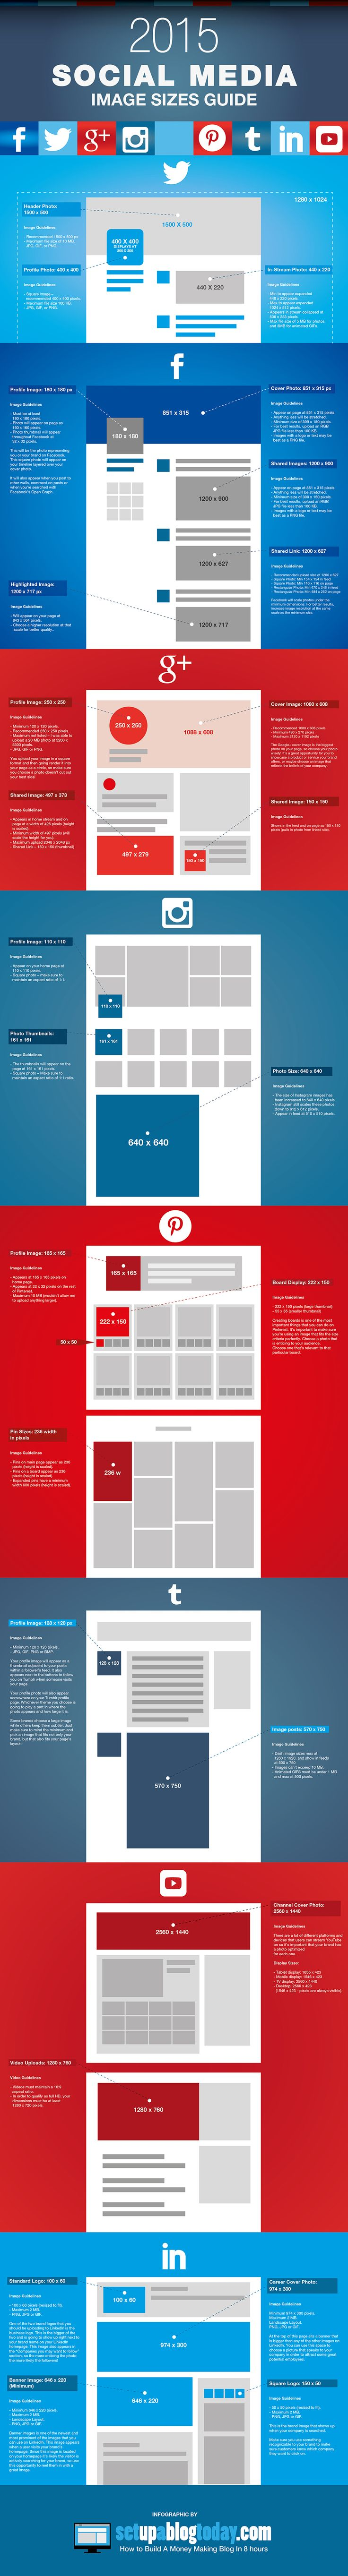 Guide to social media graphic image sizes